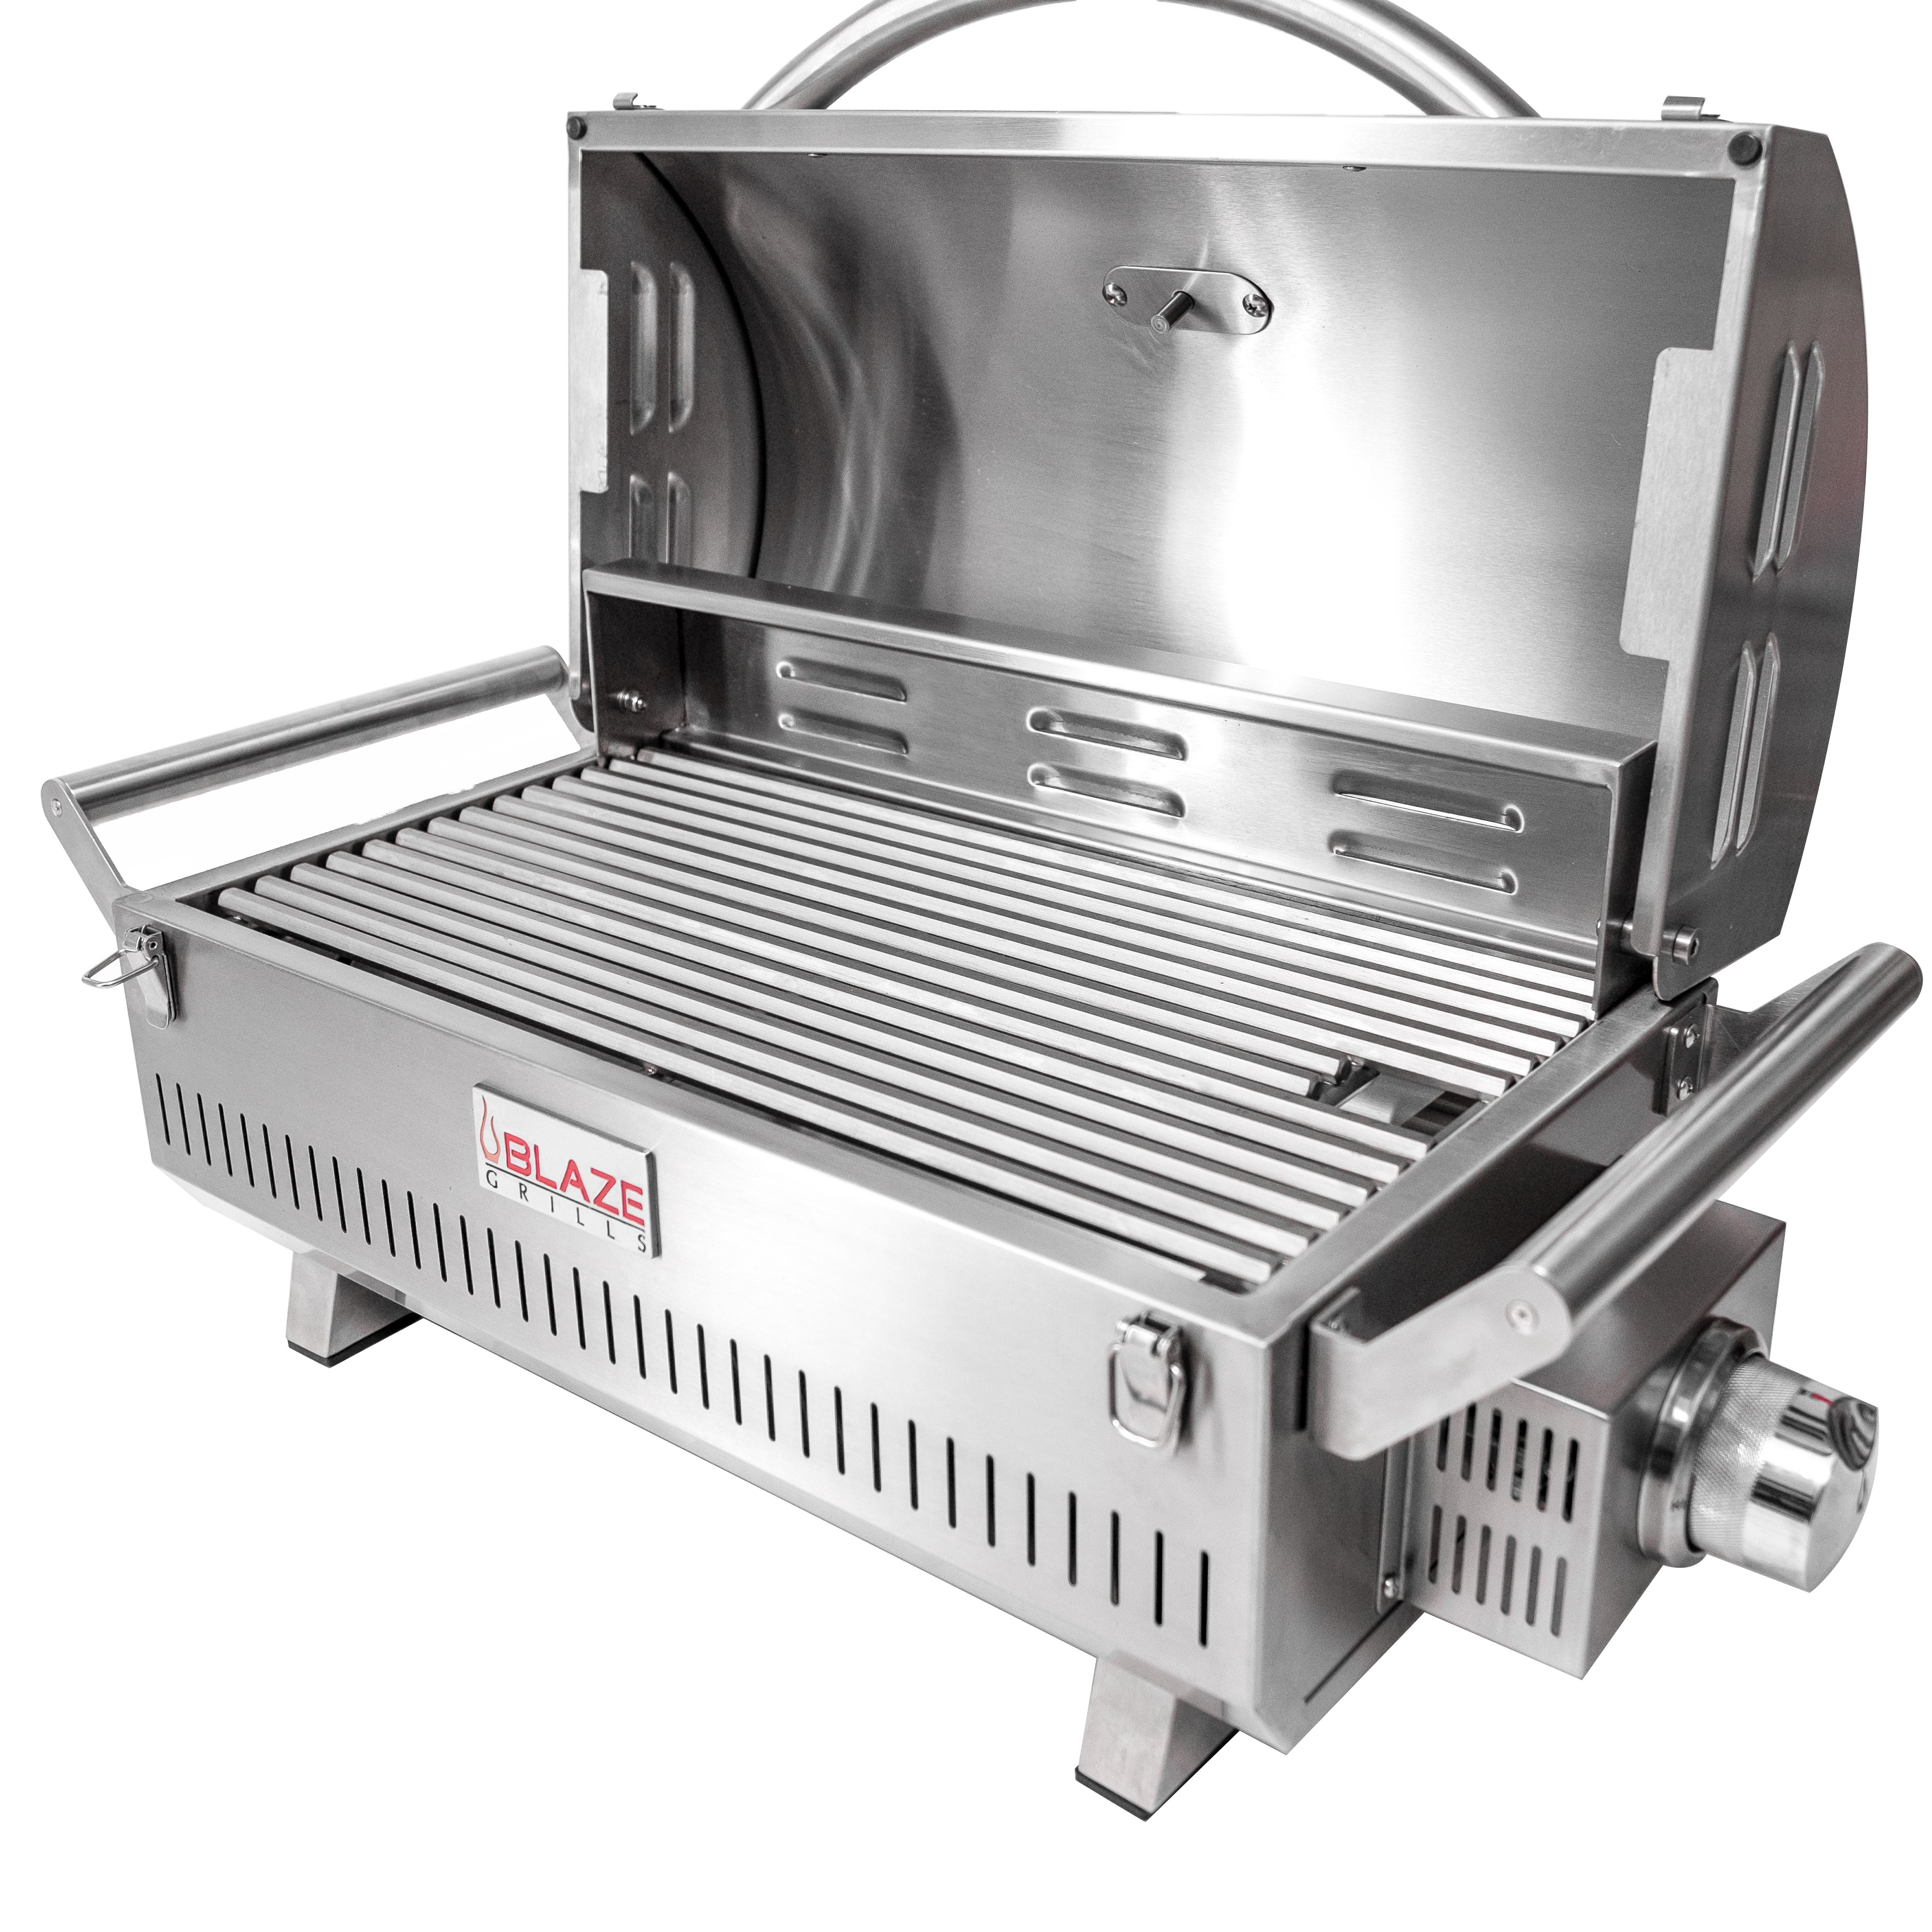 Blaze Professional Portable Tabletop Grill